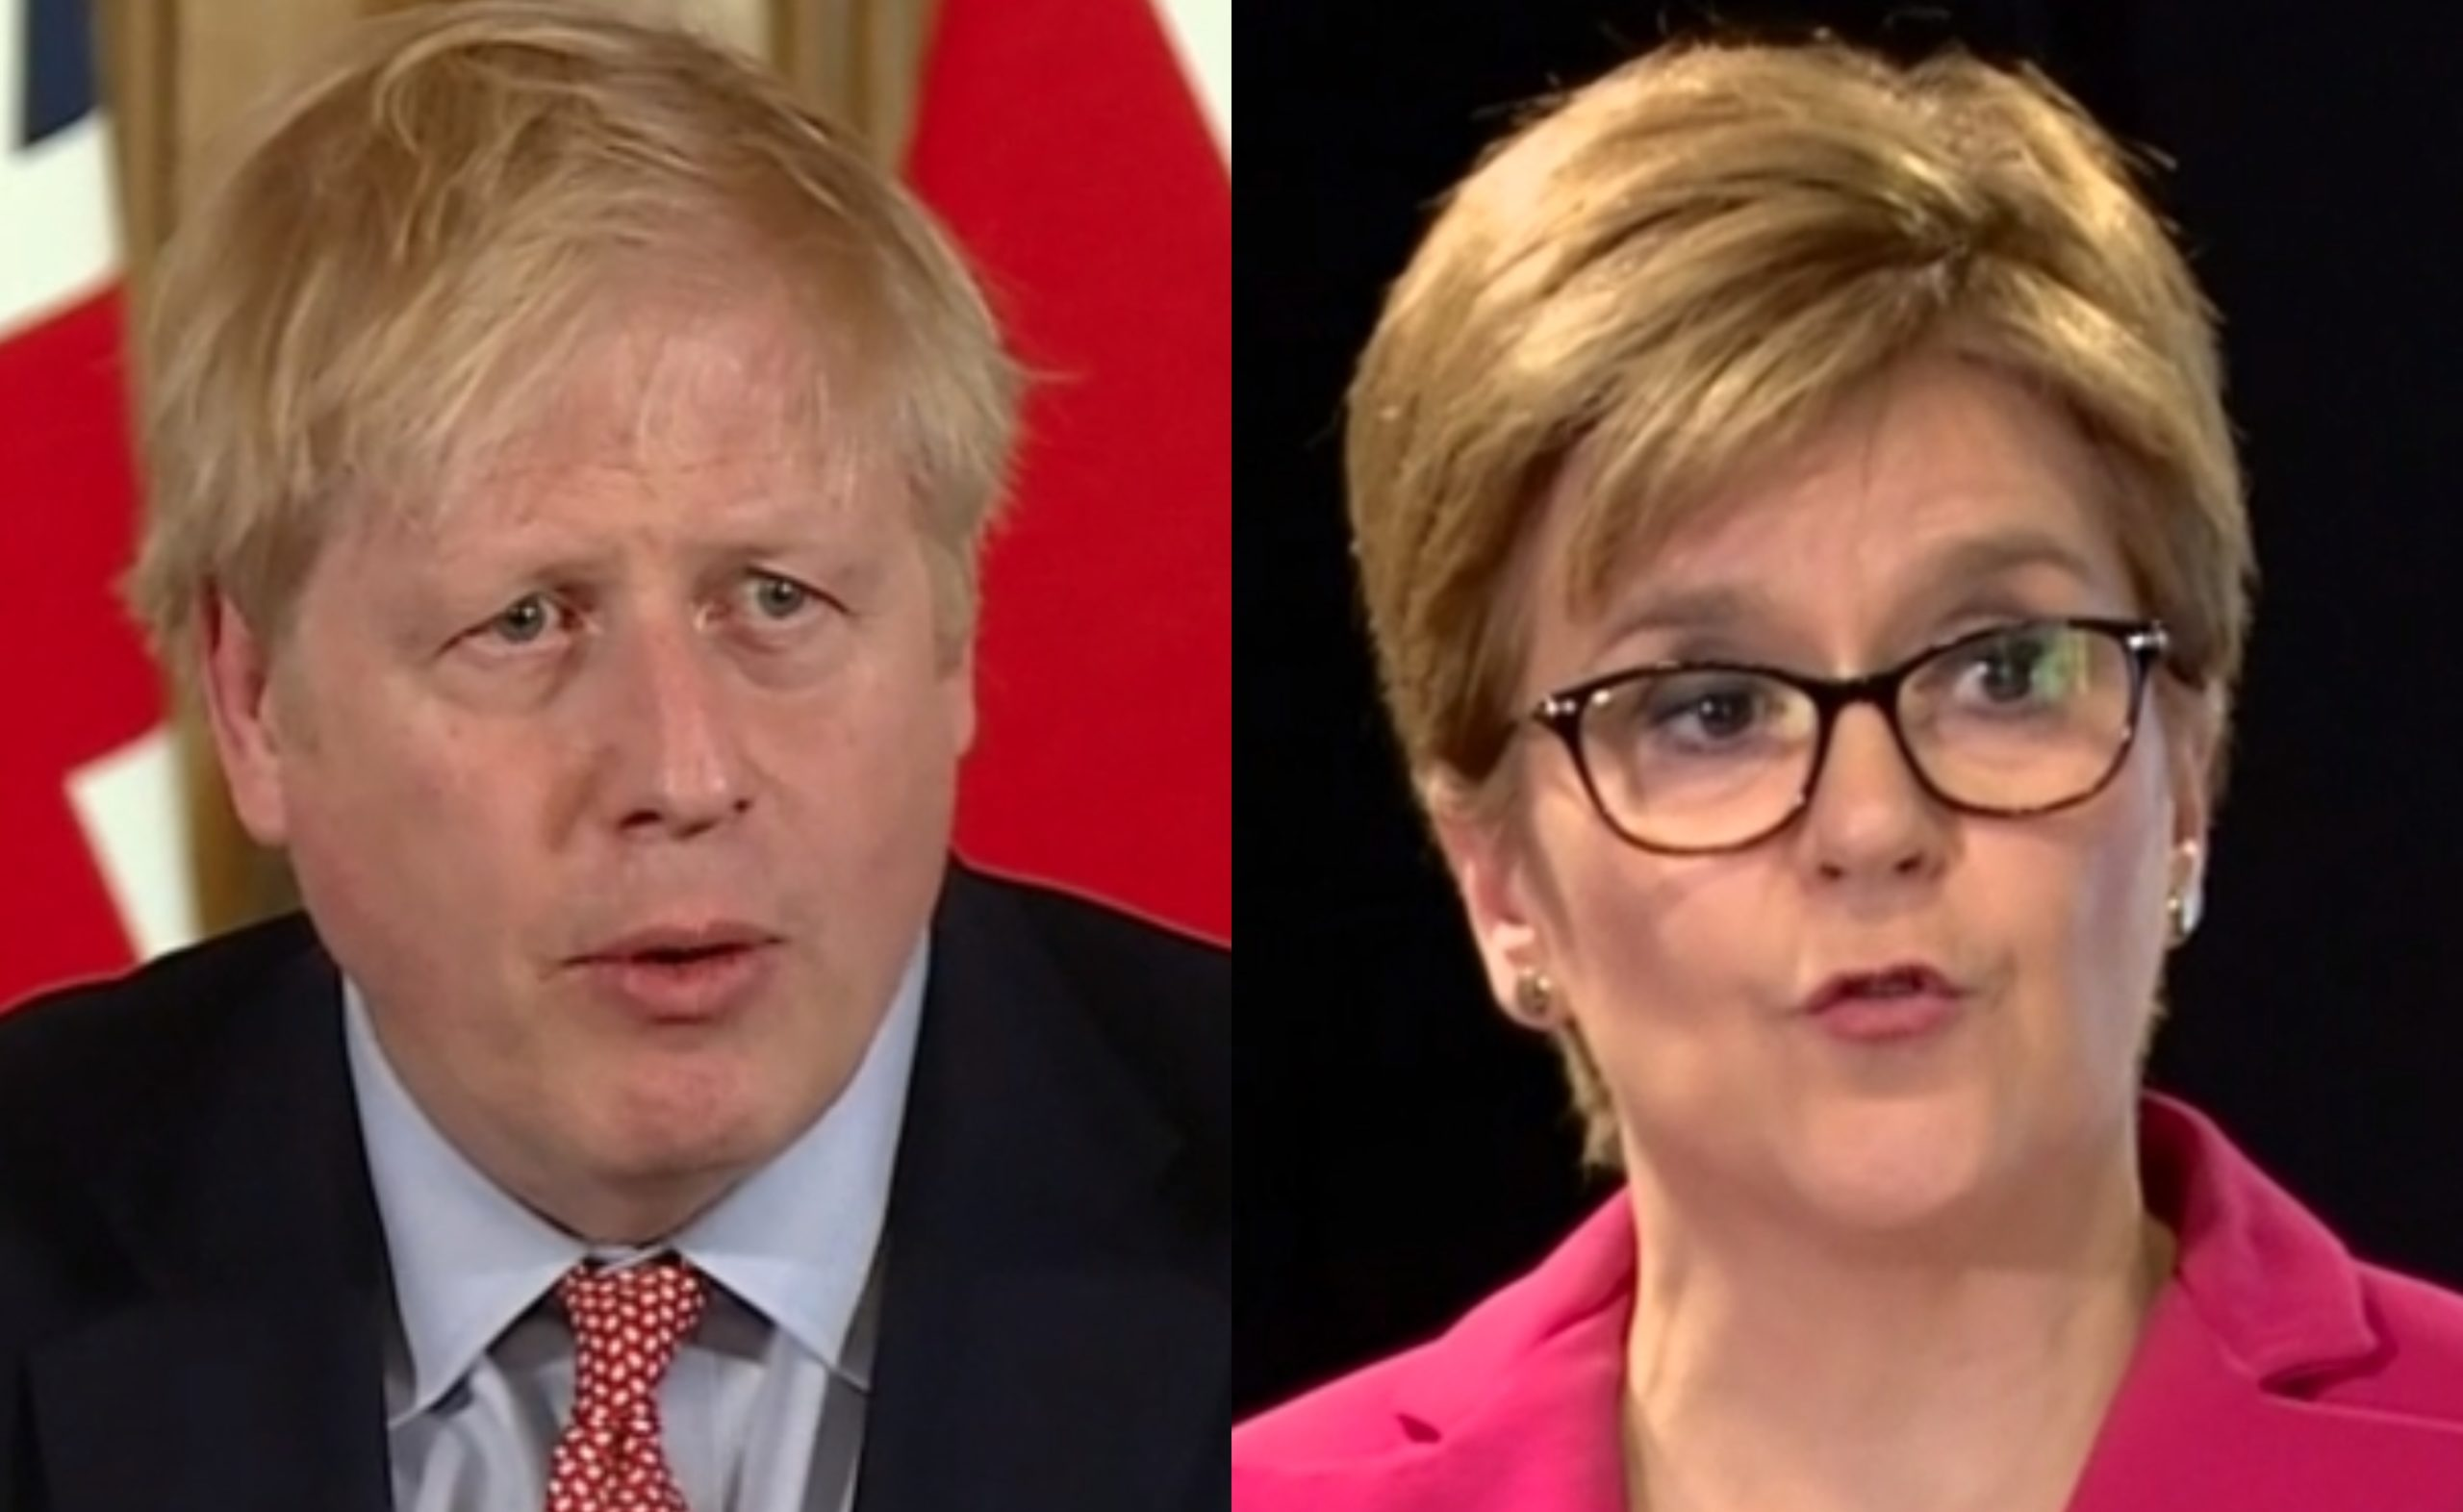 Boris Johnson and Nicola Sturgeon both provided updates on coronavirus.